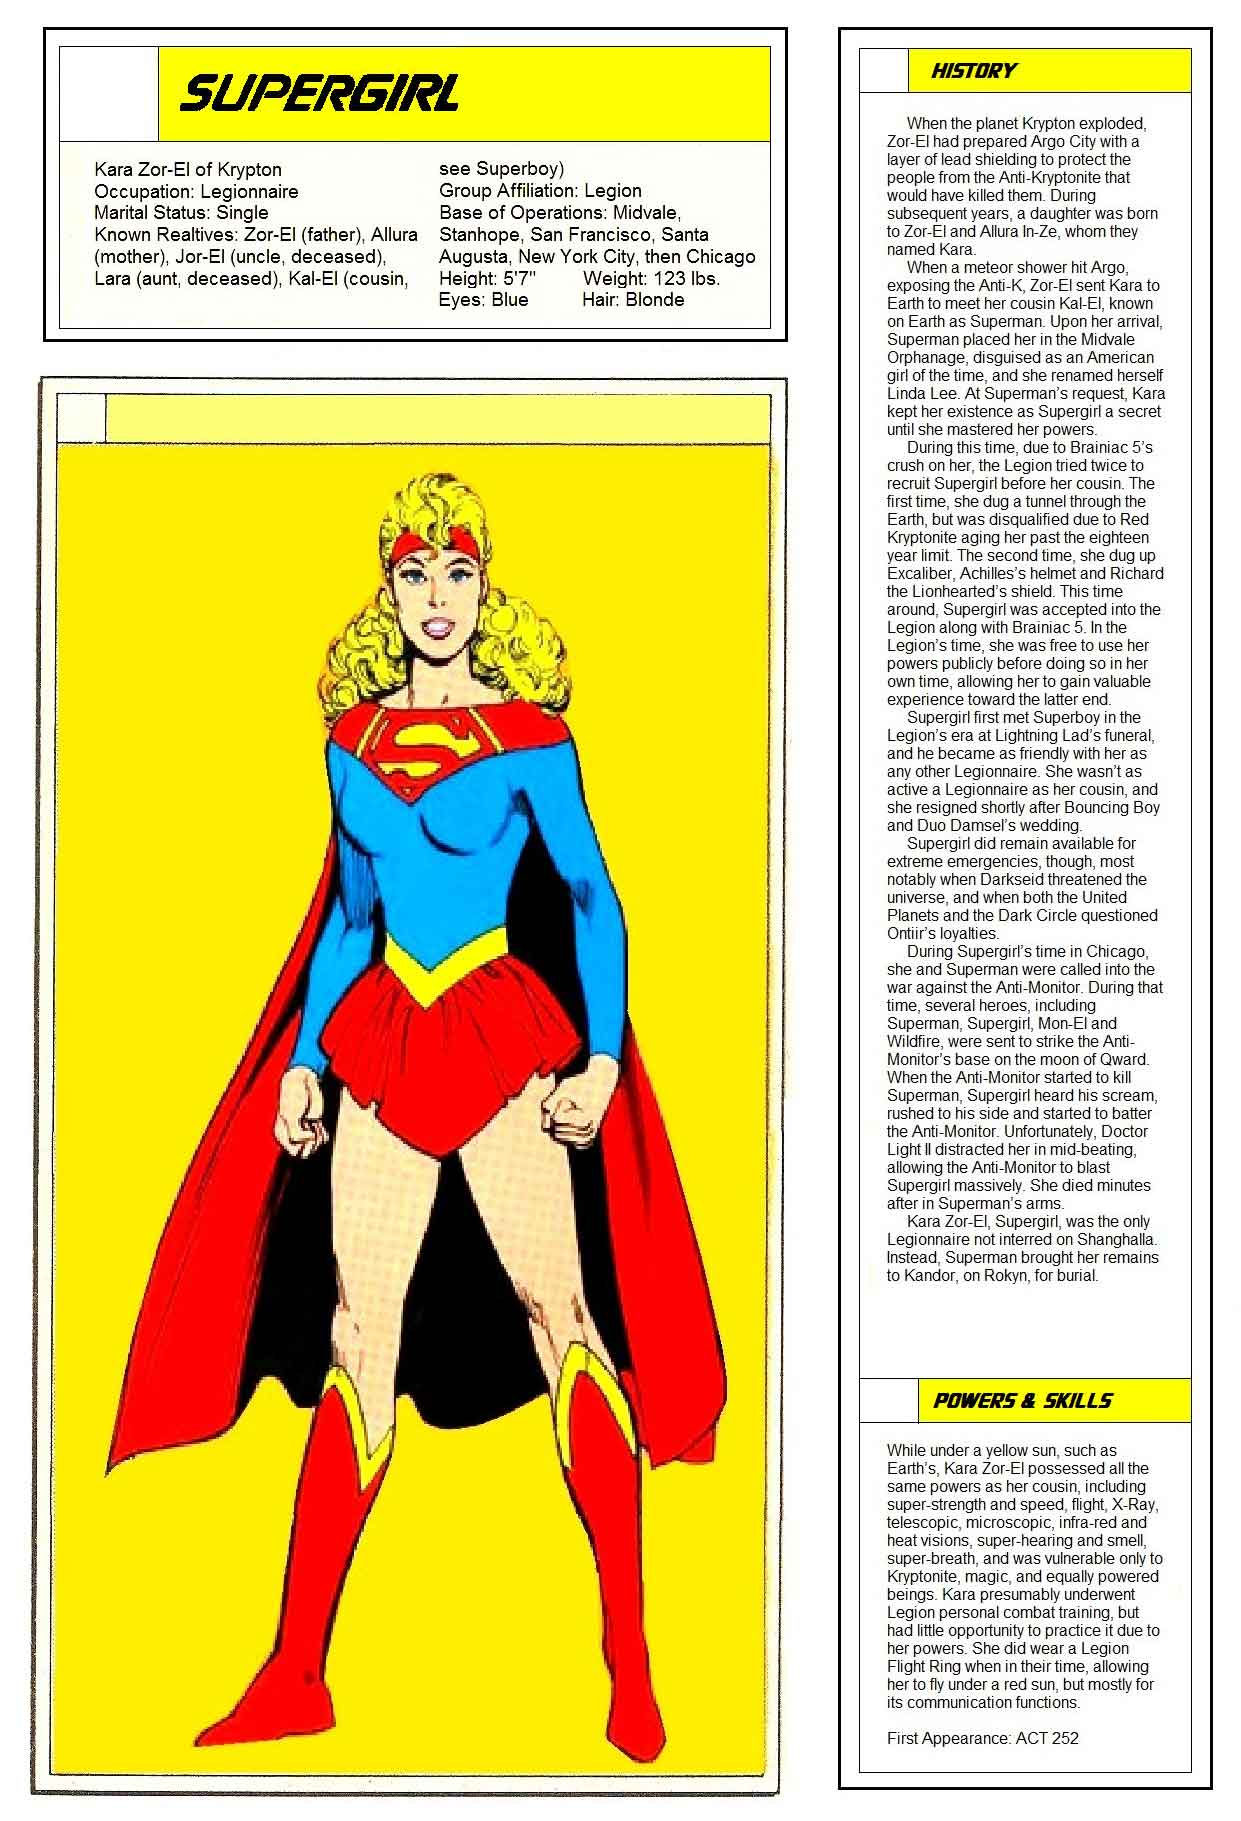 Supergirl from Who's Who in the Legion of Super-heroes